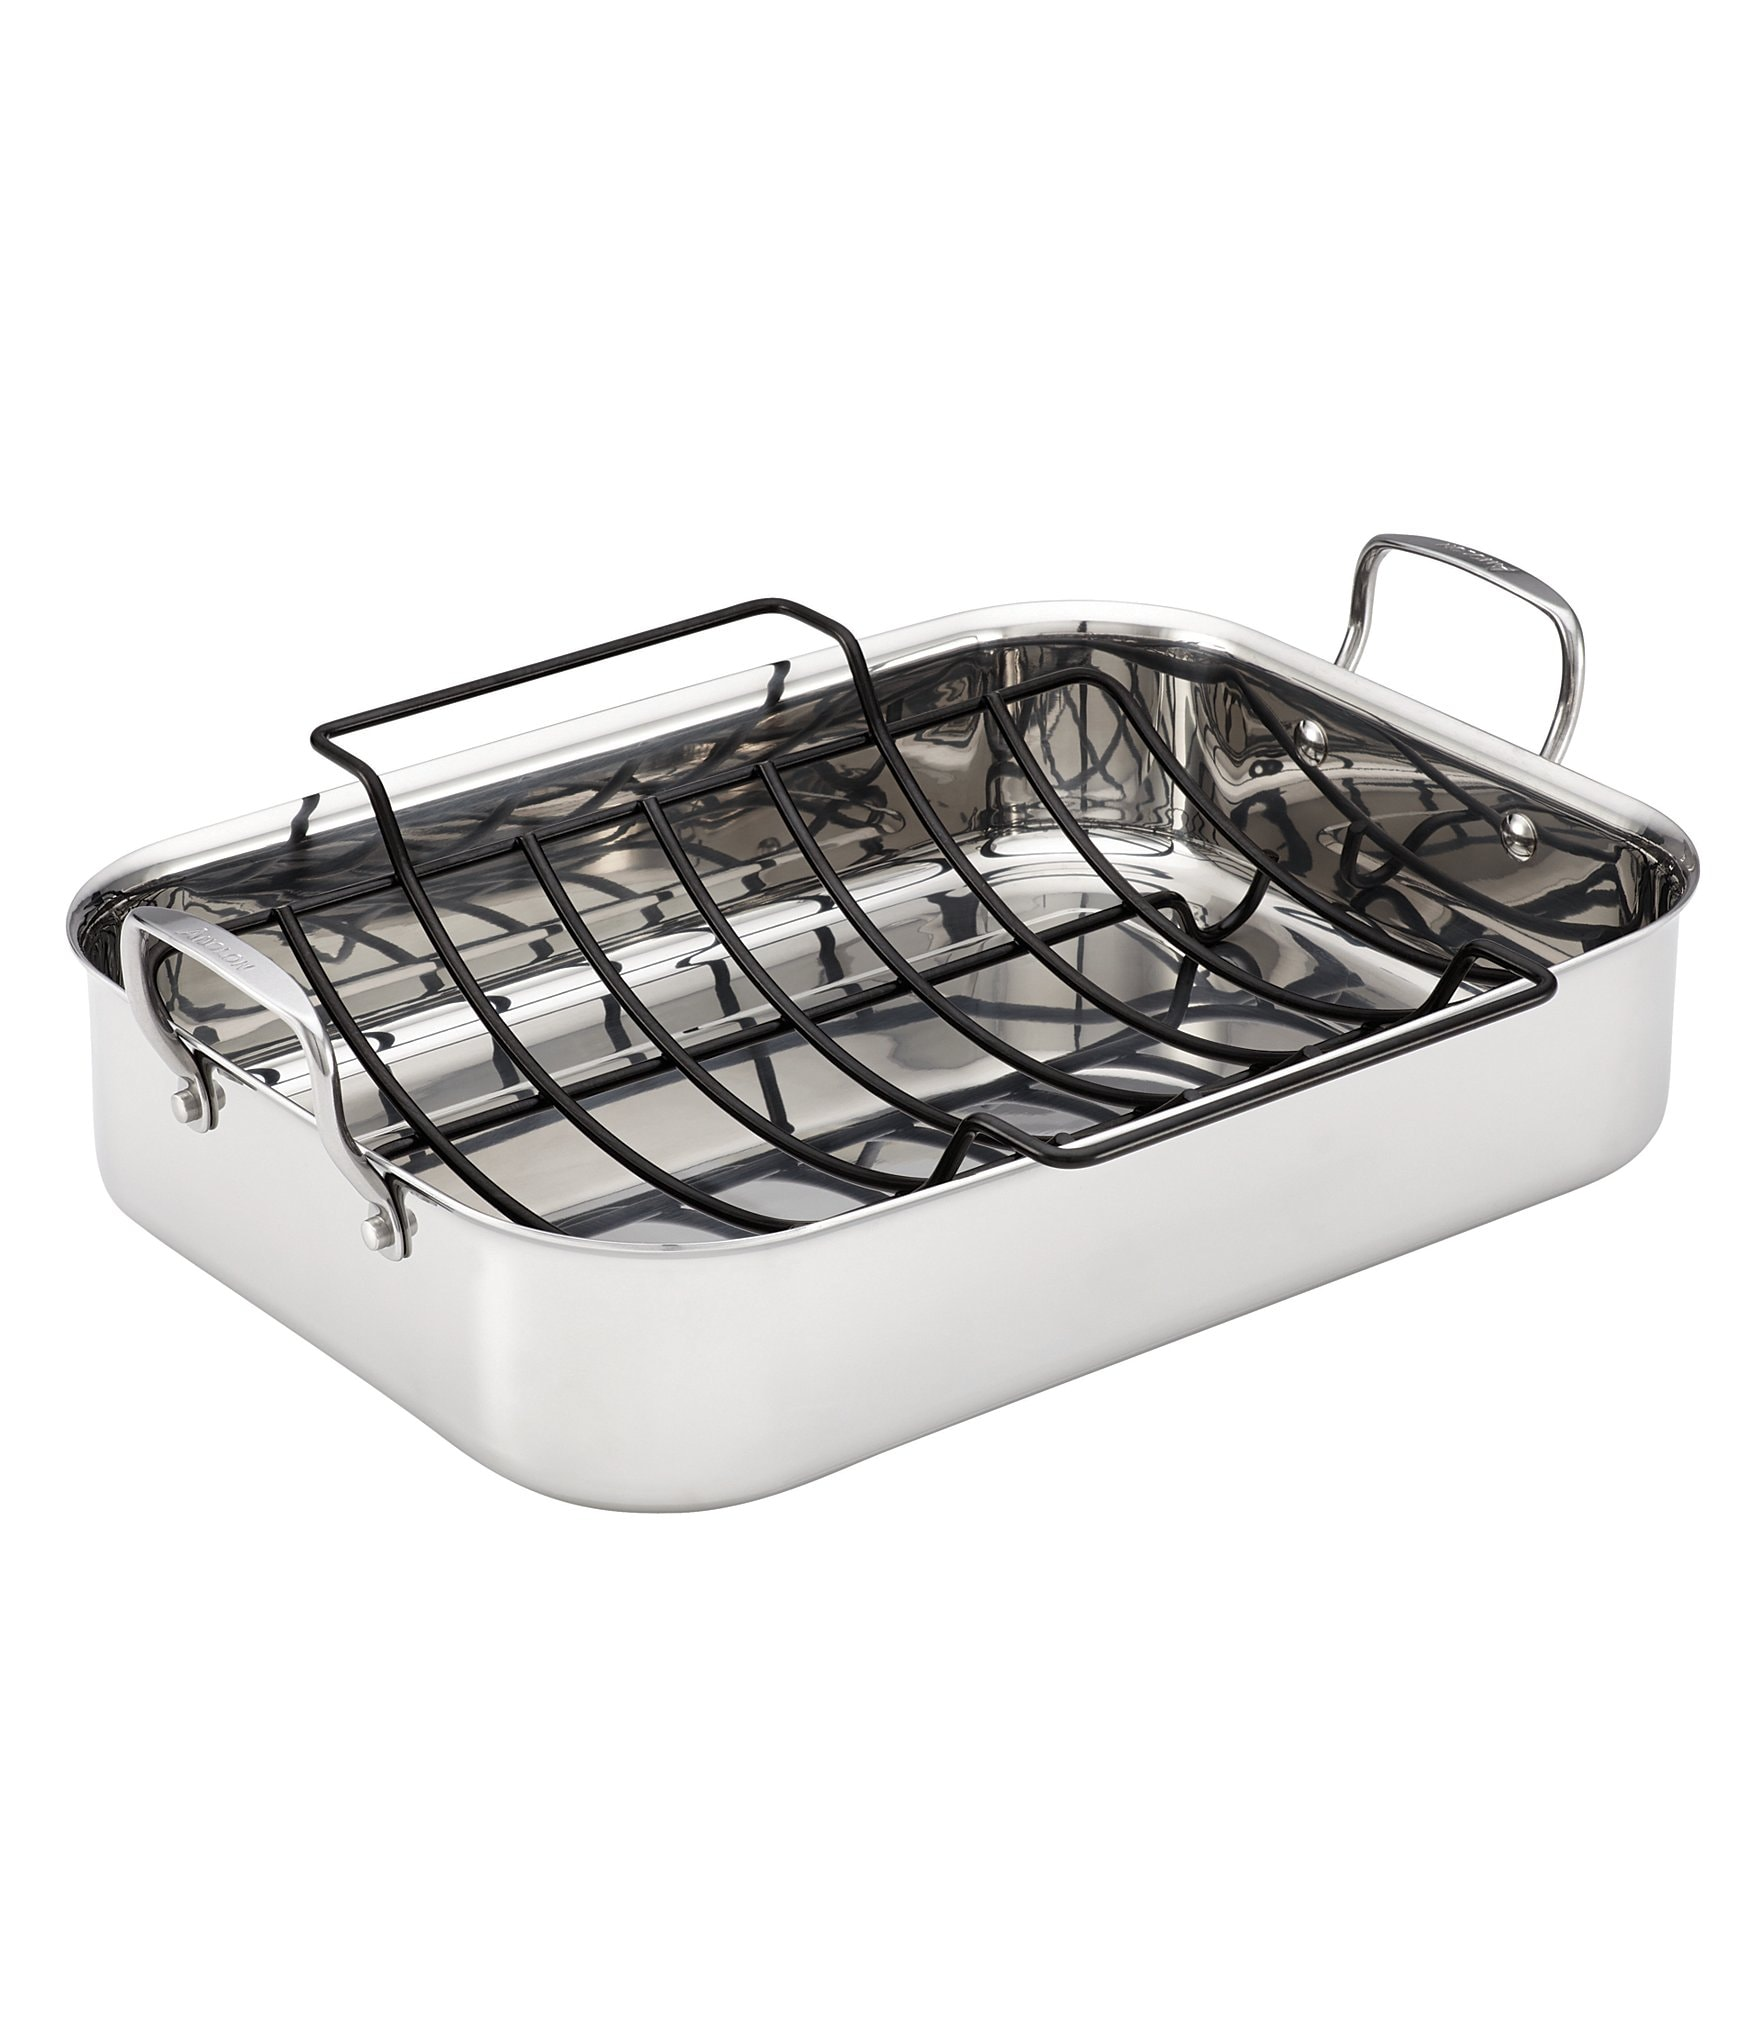 Anolon Tri Ply Clad Stainless Steel Roaster With Nonstick